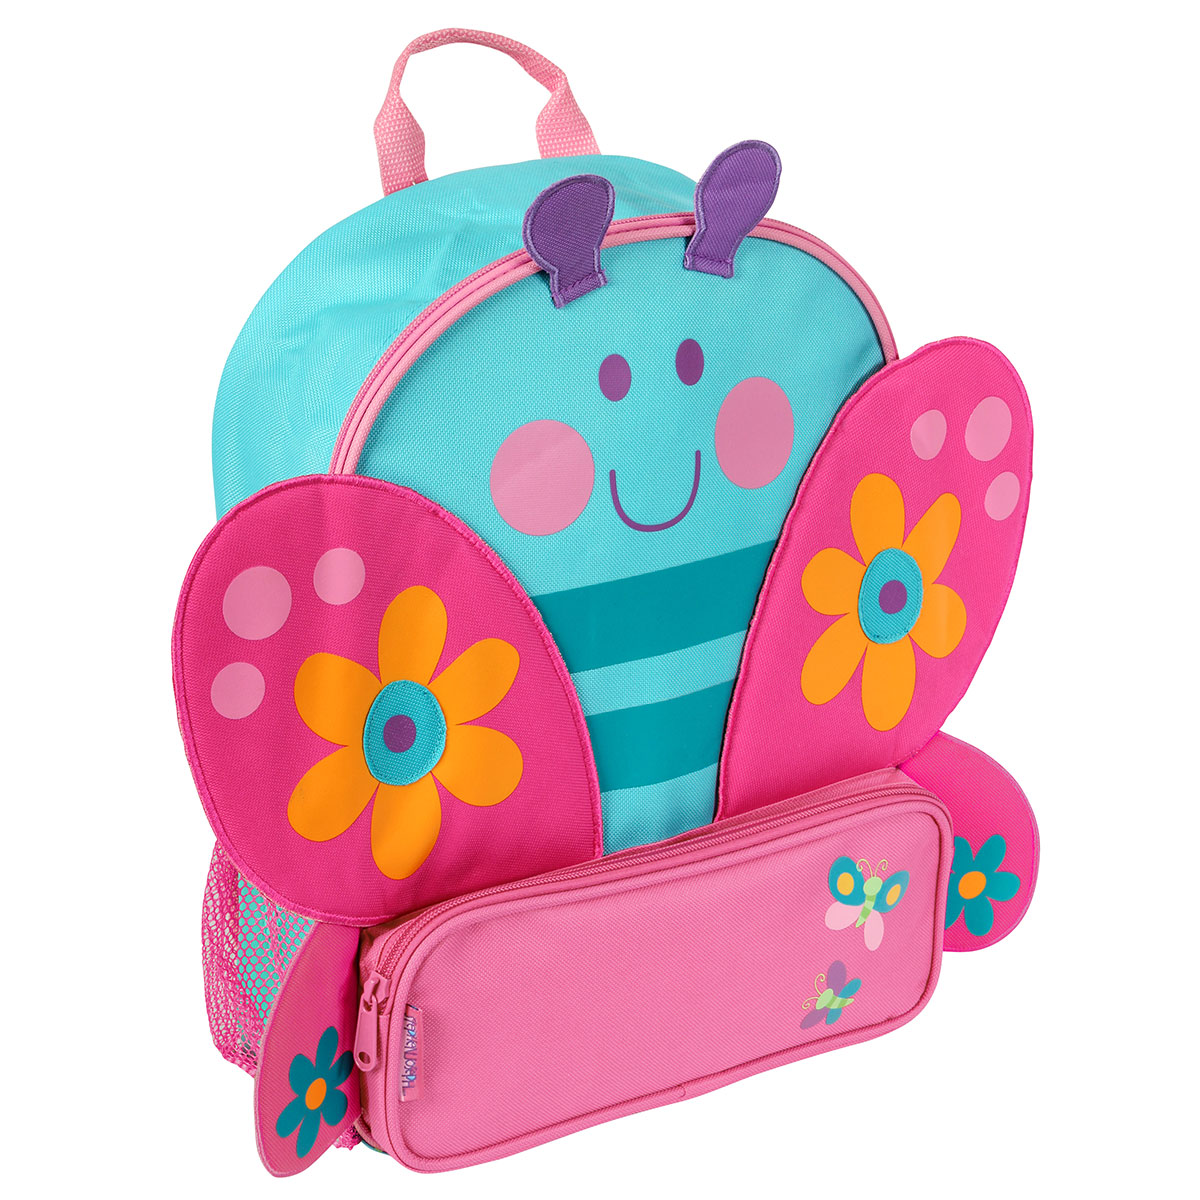 c87728bf39 STEPHEN JOSEPH SIDEKICK BACKPACK BUTTERFLY (F17) – The Little Shop